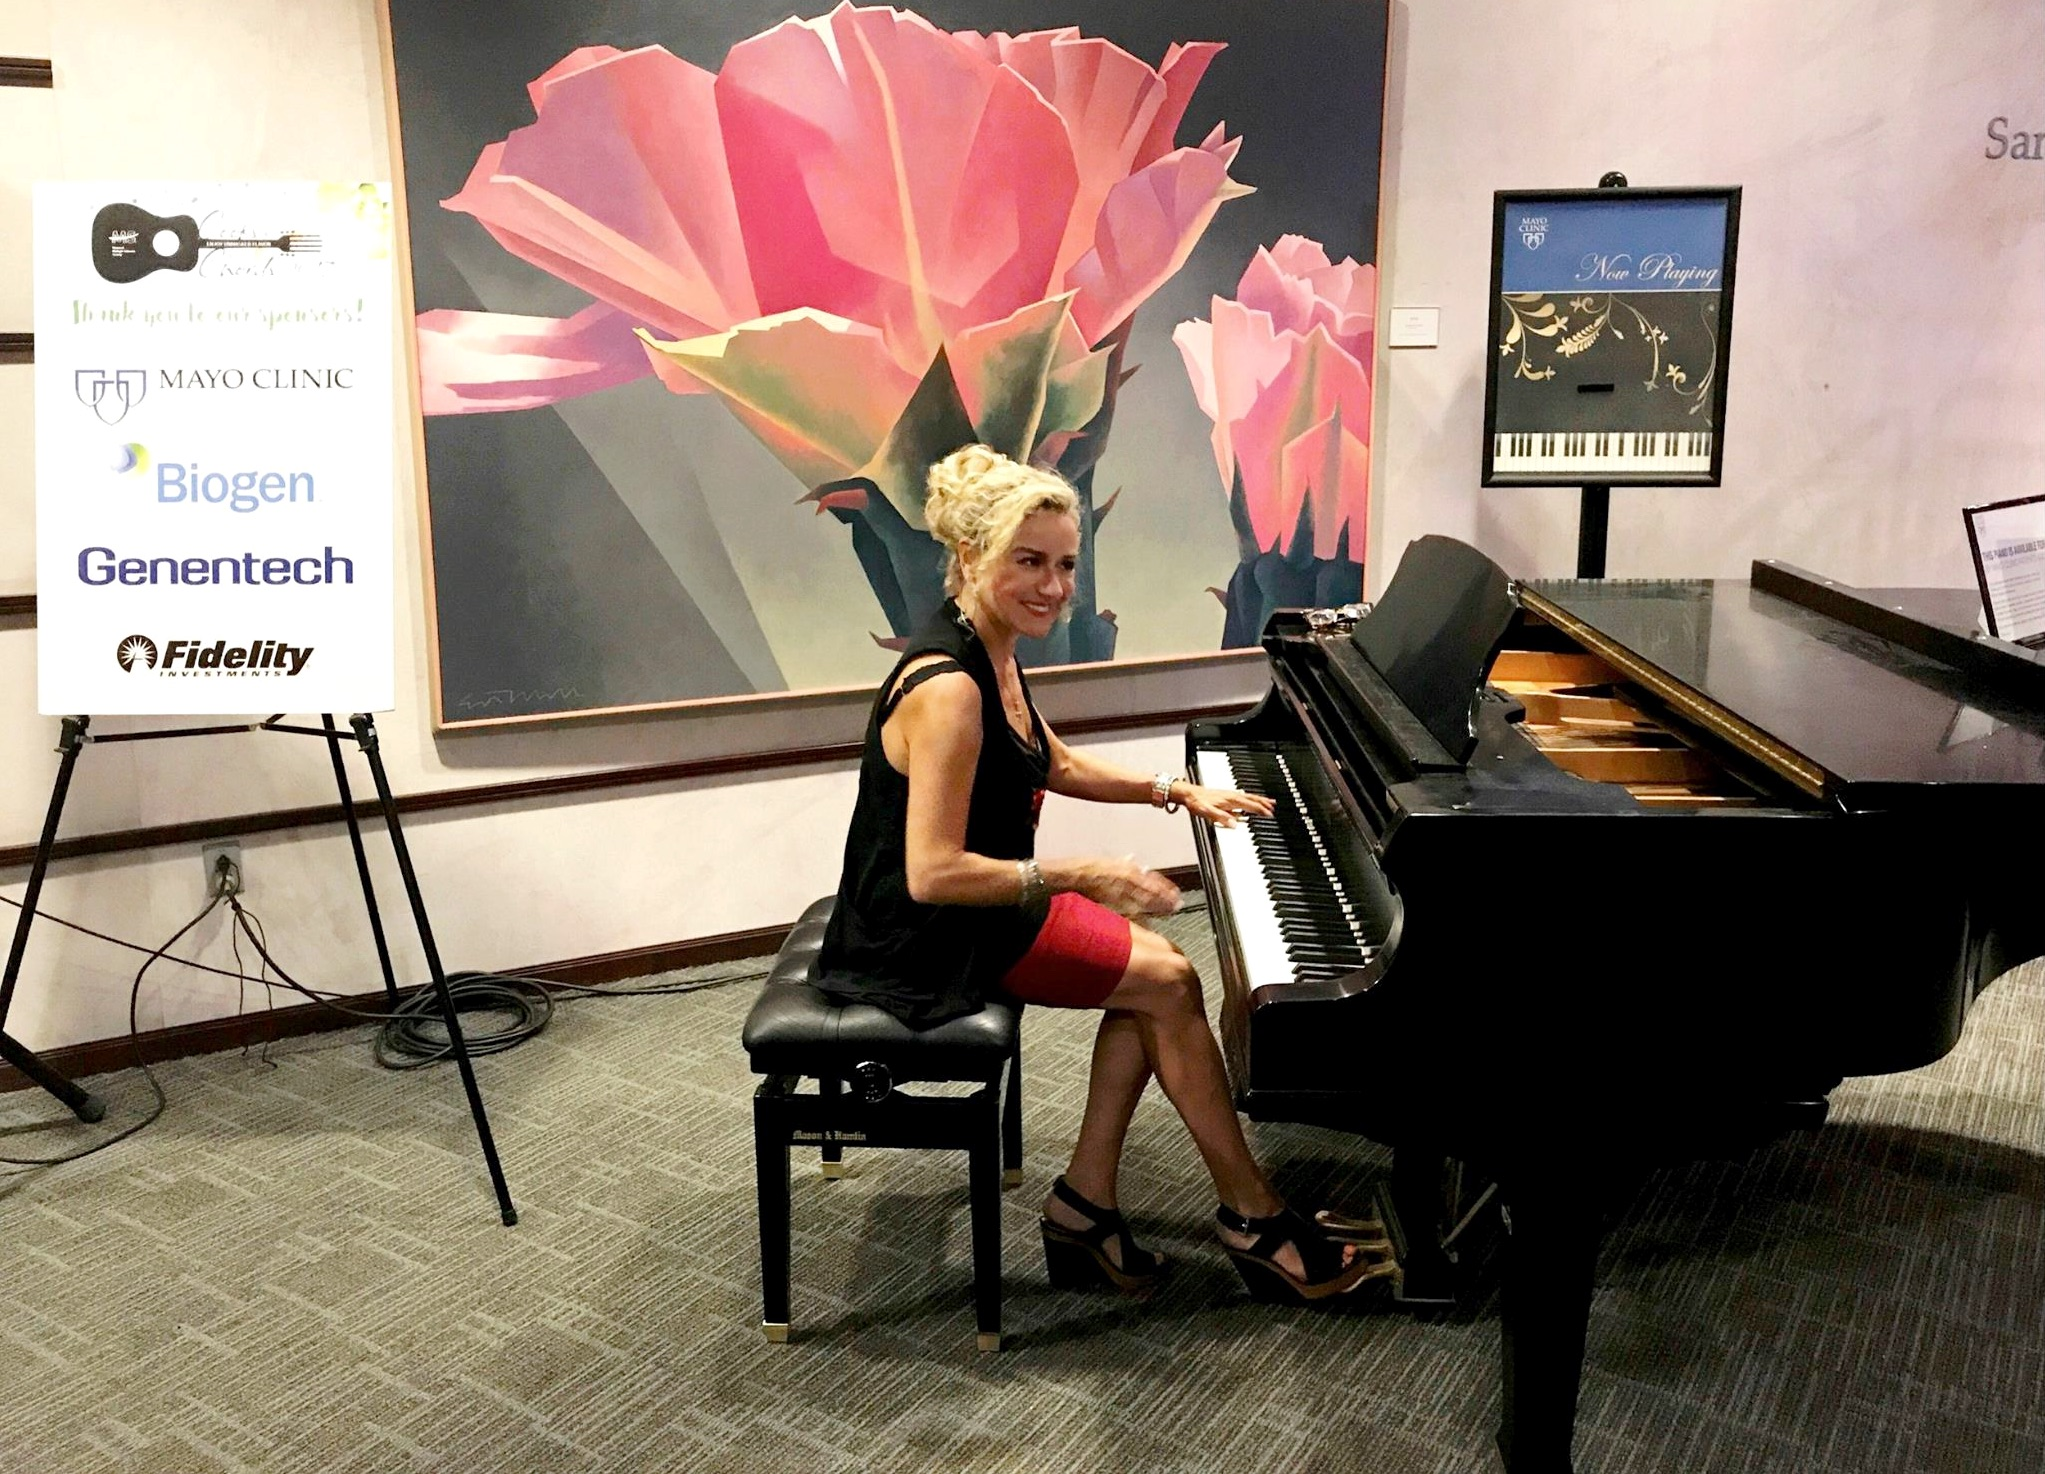 Performing at Mayo Clinic in Scottsdale